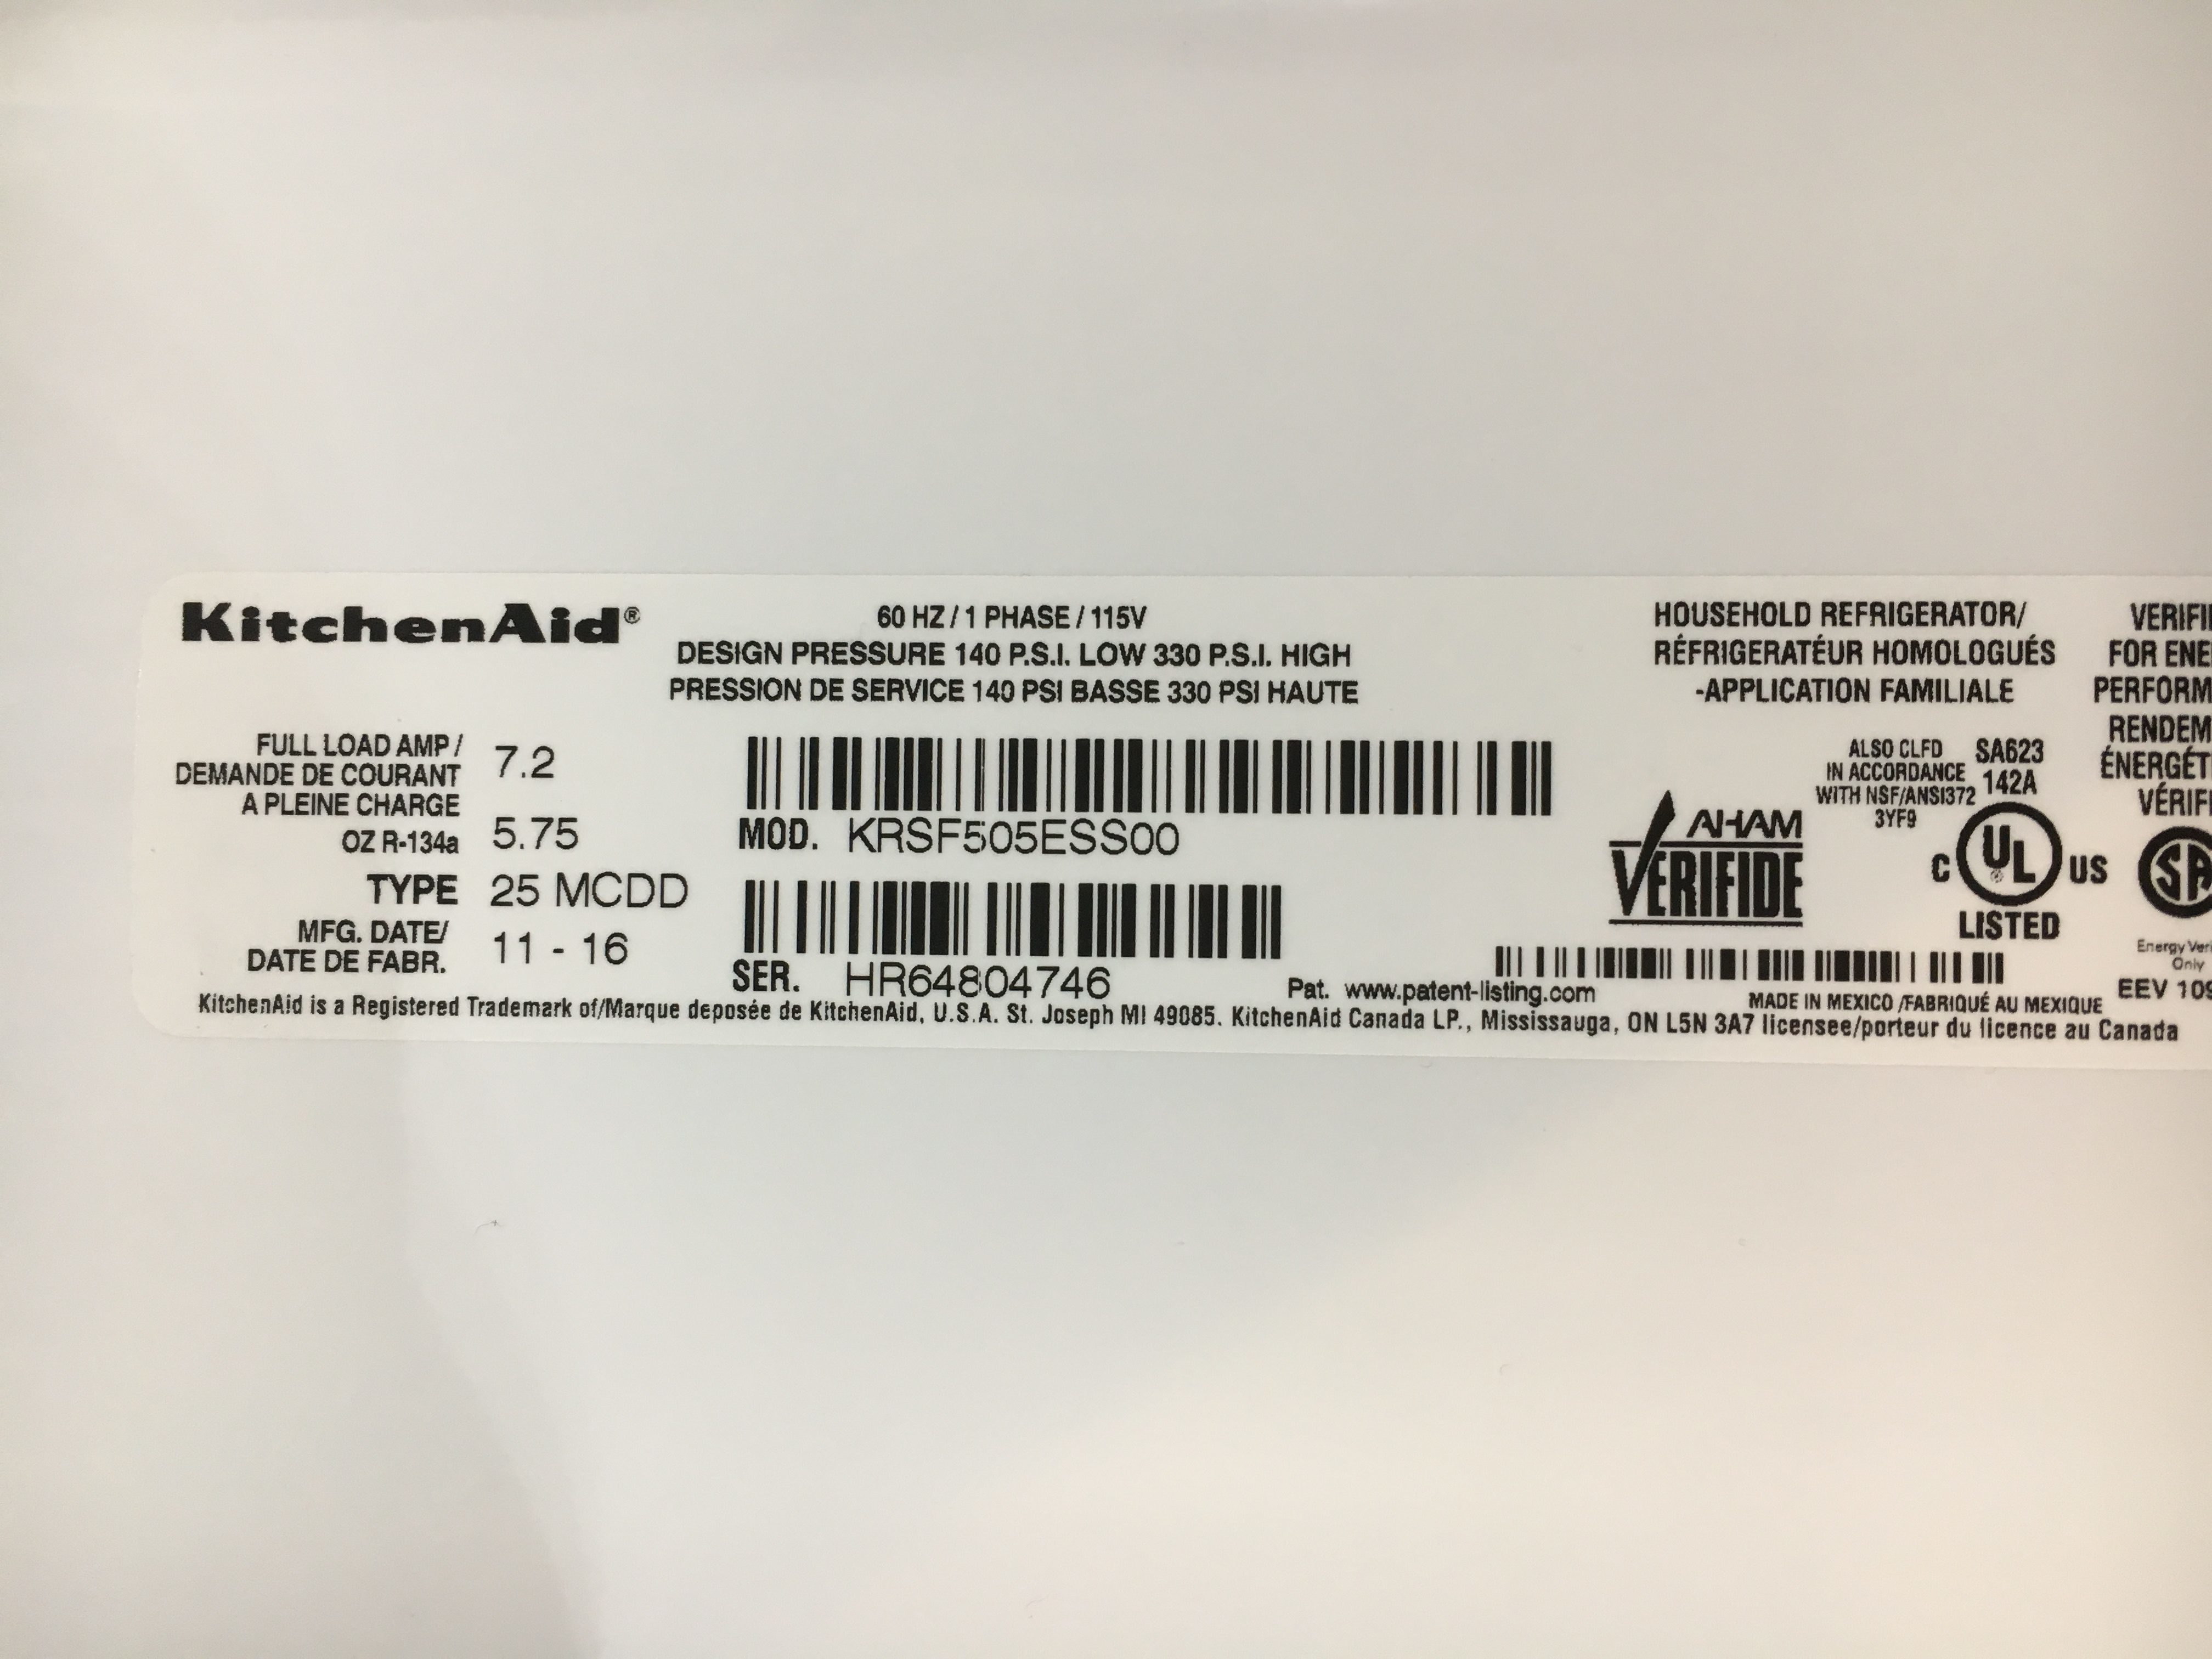 Kitchenaid Refrigerator Not Cooling Properly top 807 reviews and complaints about kitchenaid refrigerators